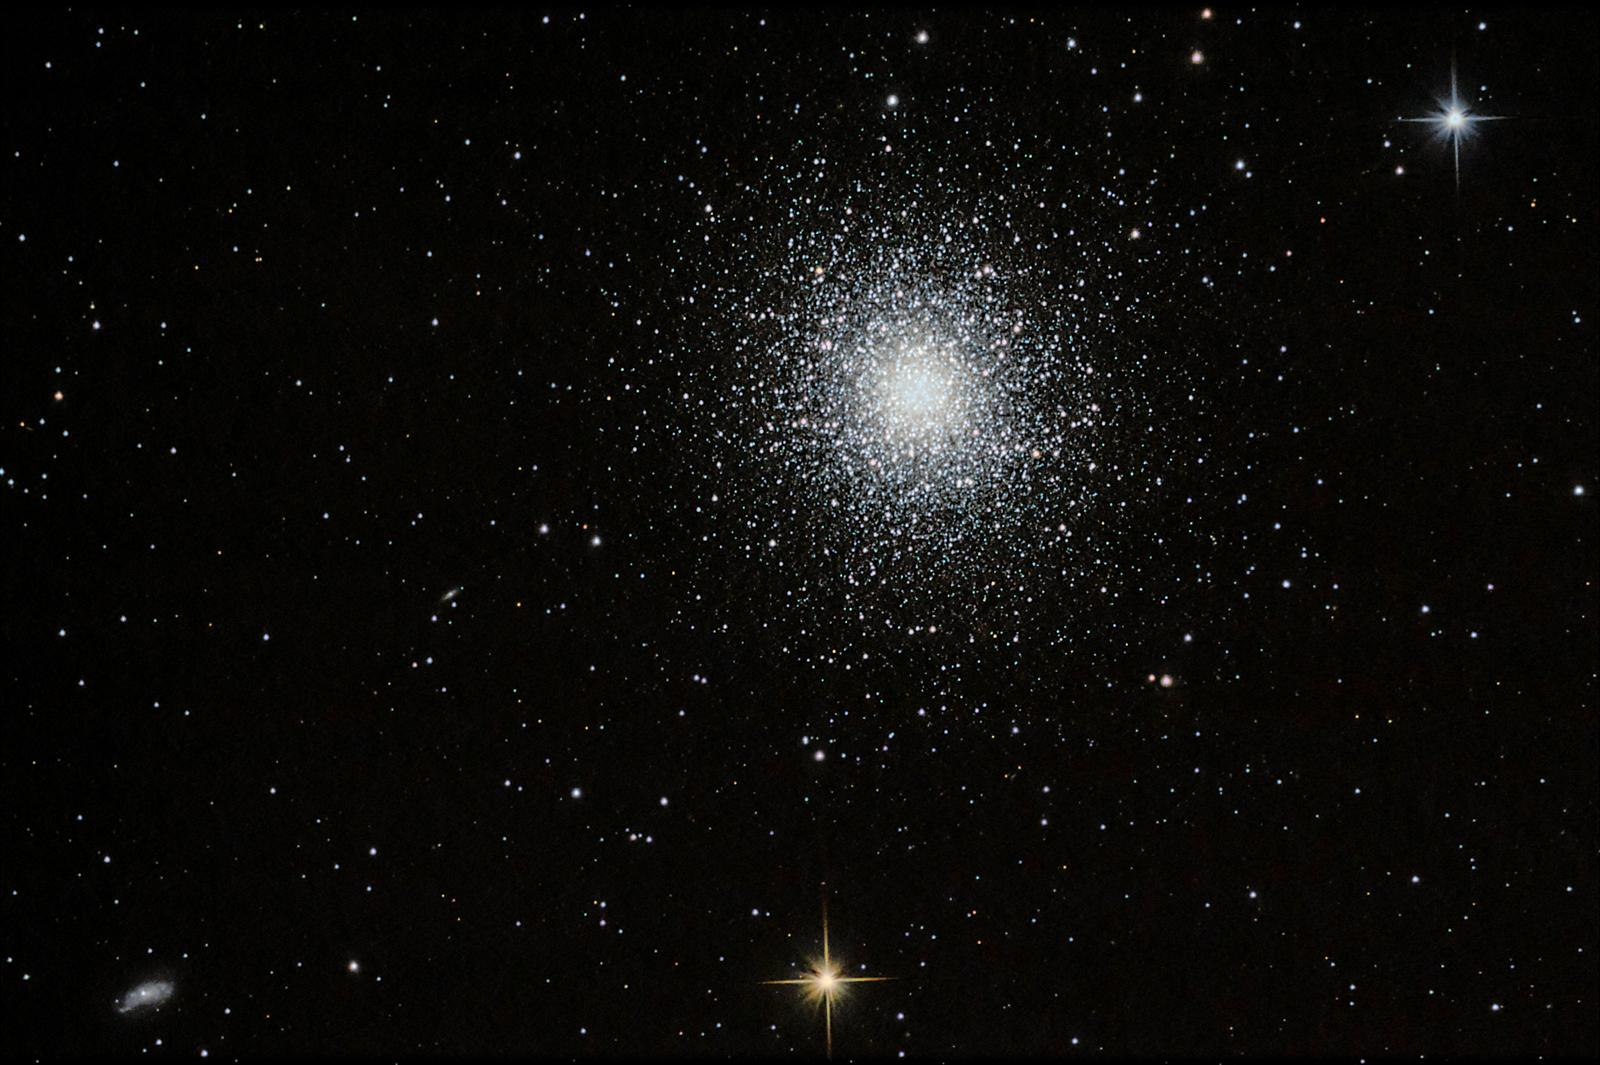 M13 5-29-2016 MKSC 2XD 6in Orion